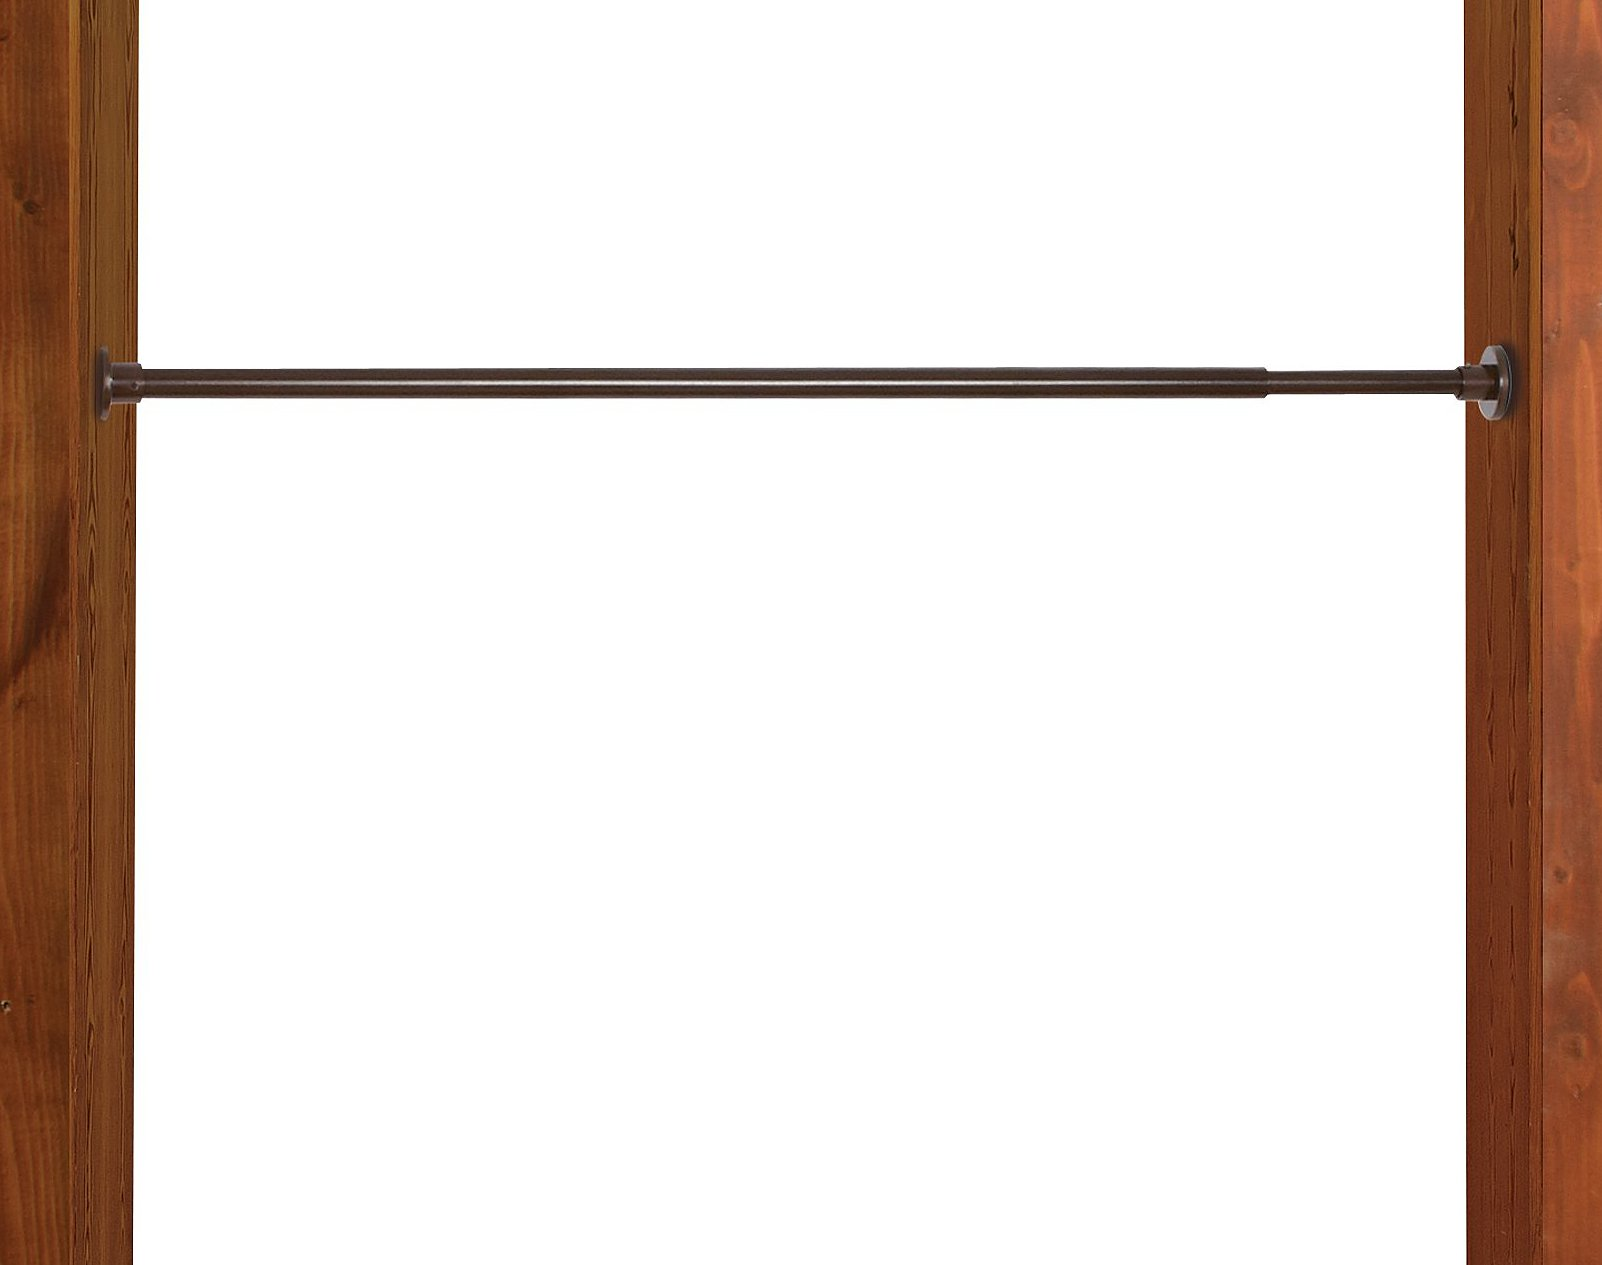 Versailles Home Fashions Stainless Steel Indoor and Outdoor 66/120-Inch Duo Tension Rod, 3/4-Inch Diameter, Espresso